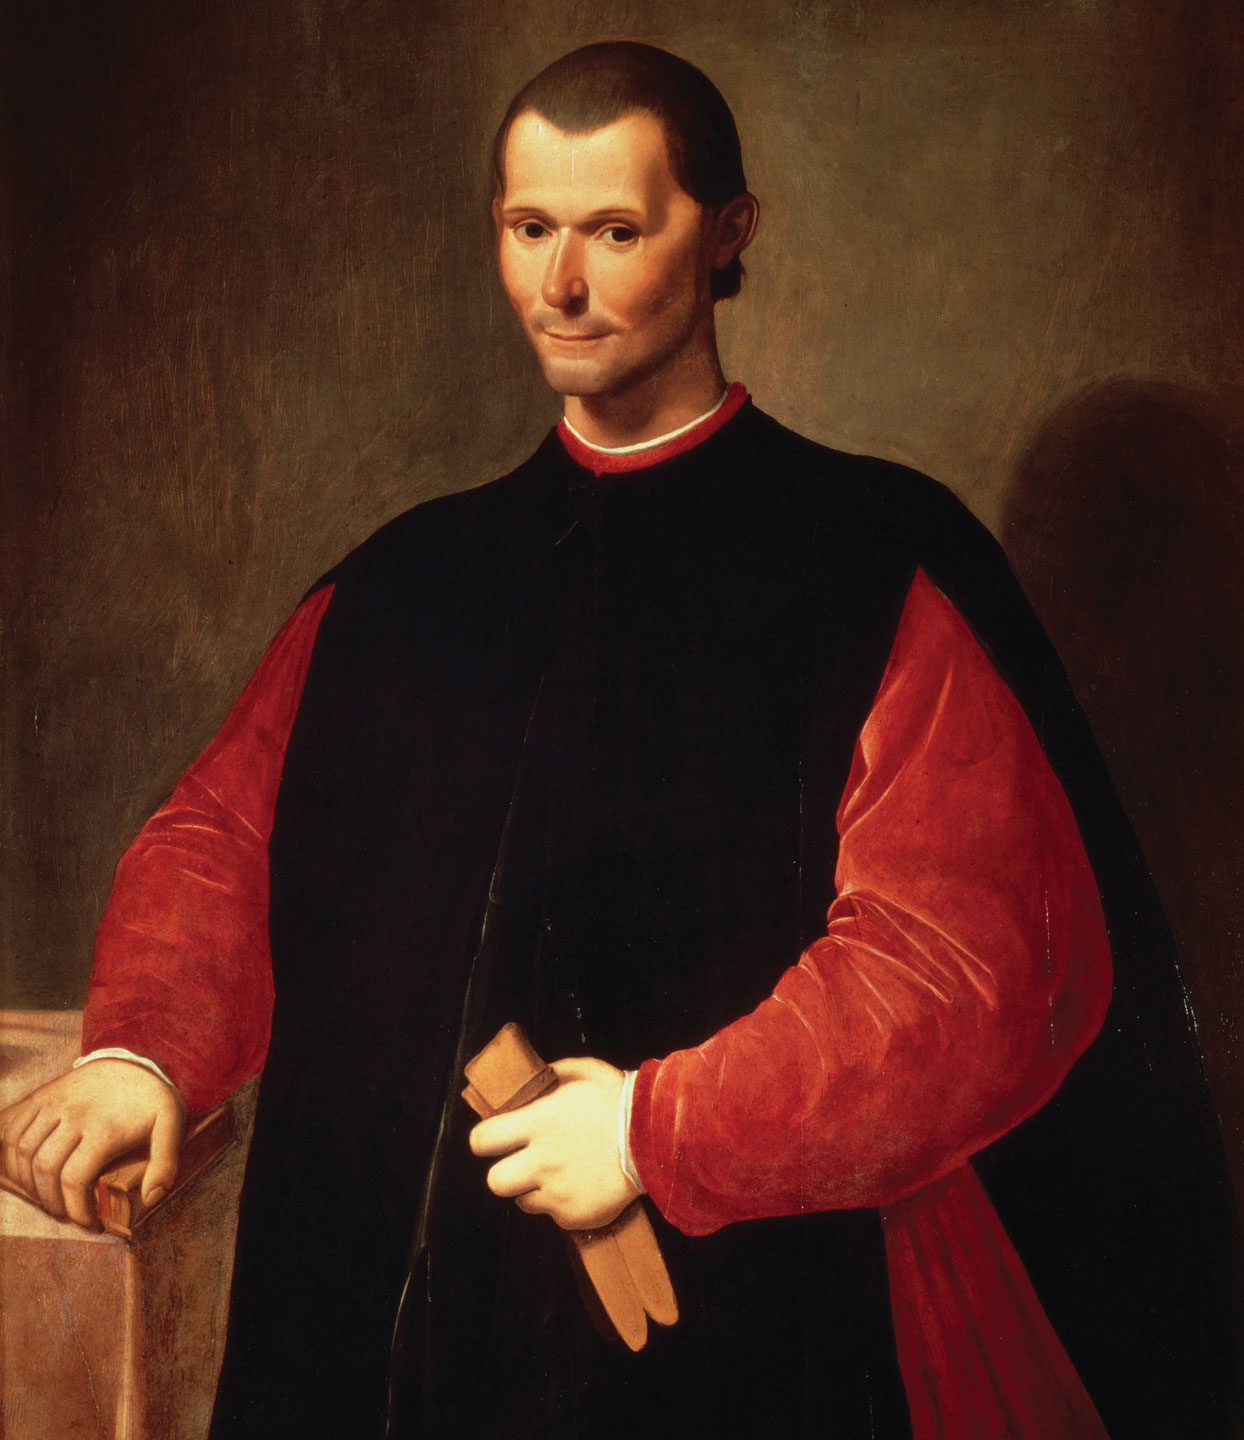 Was Machiavelli a cunt?